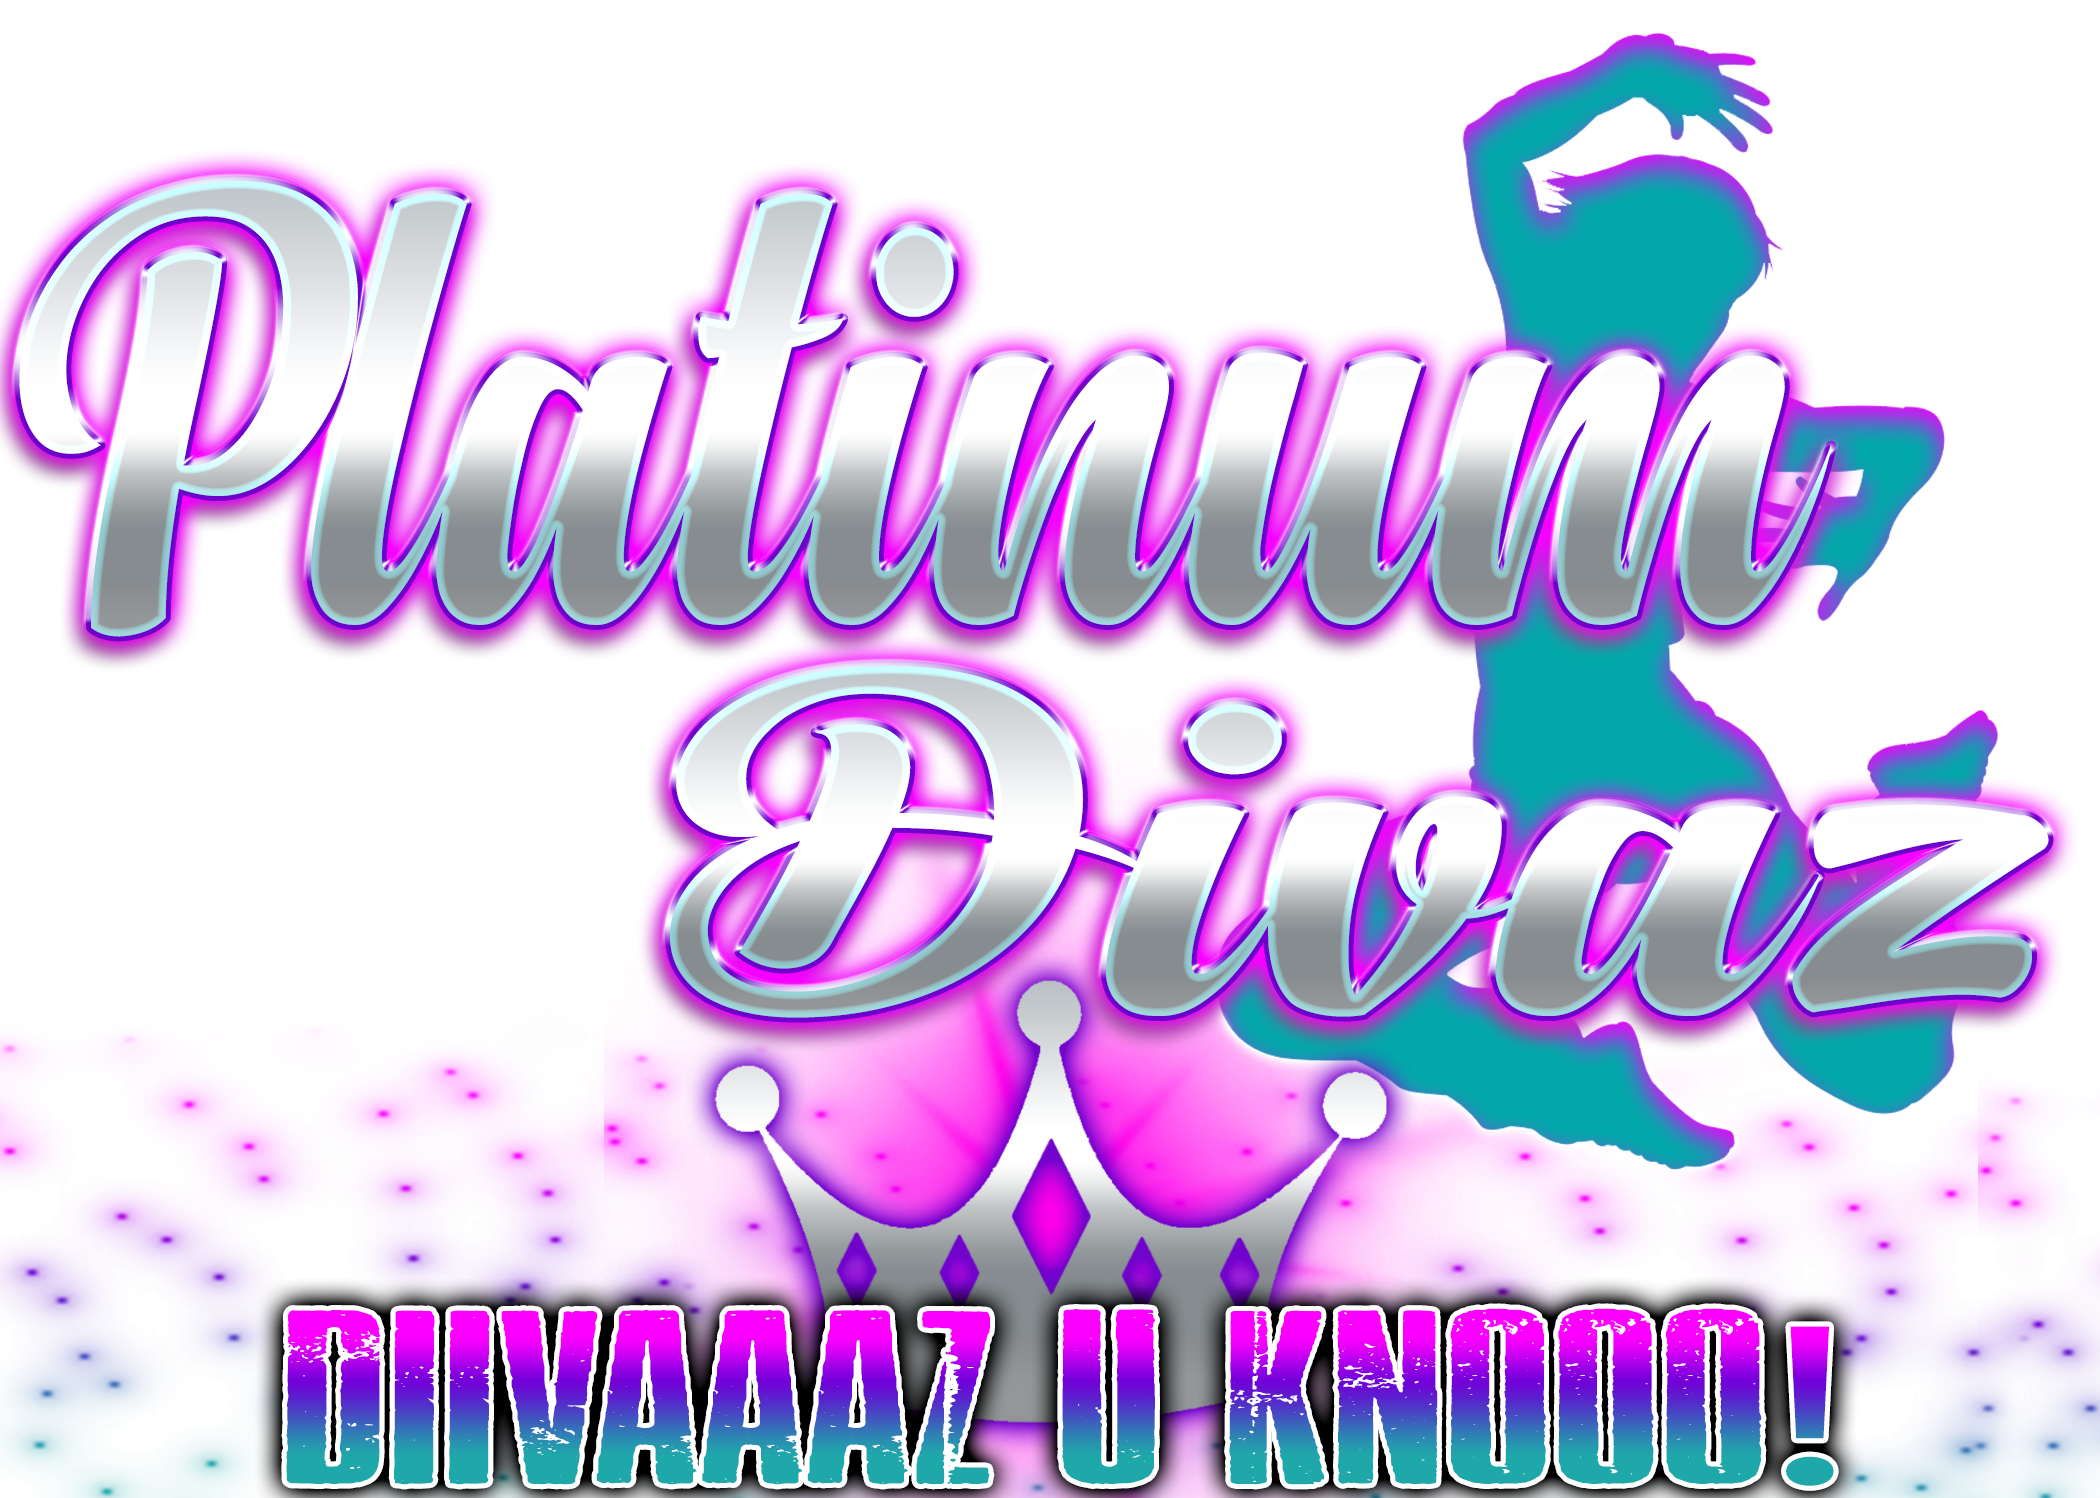 Platinum Divaz Dance CO.